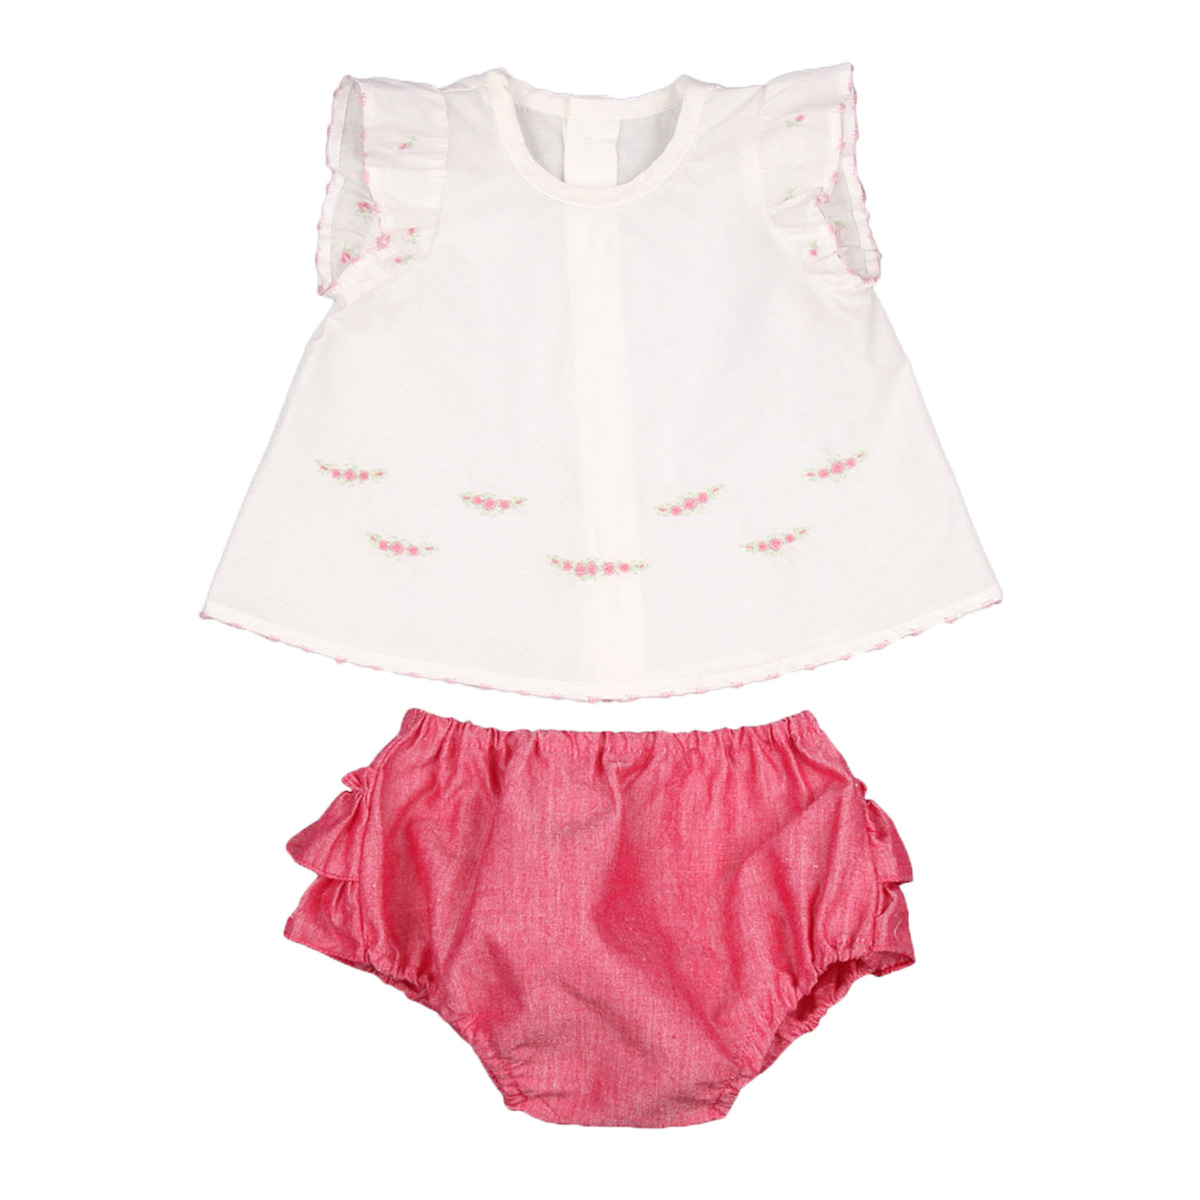 Poeme & Posie White Top and Hot Pink Bloomer Set